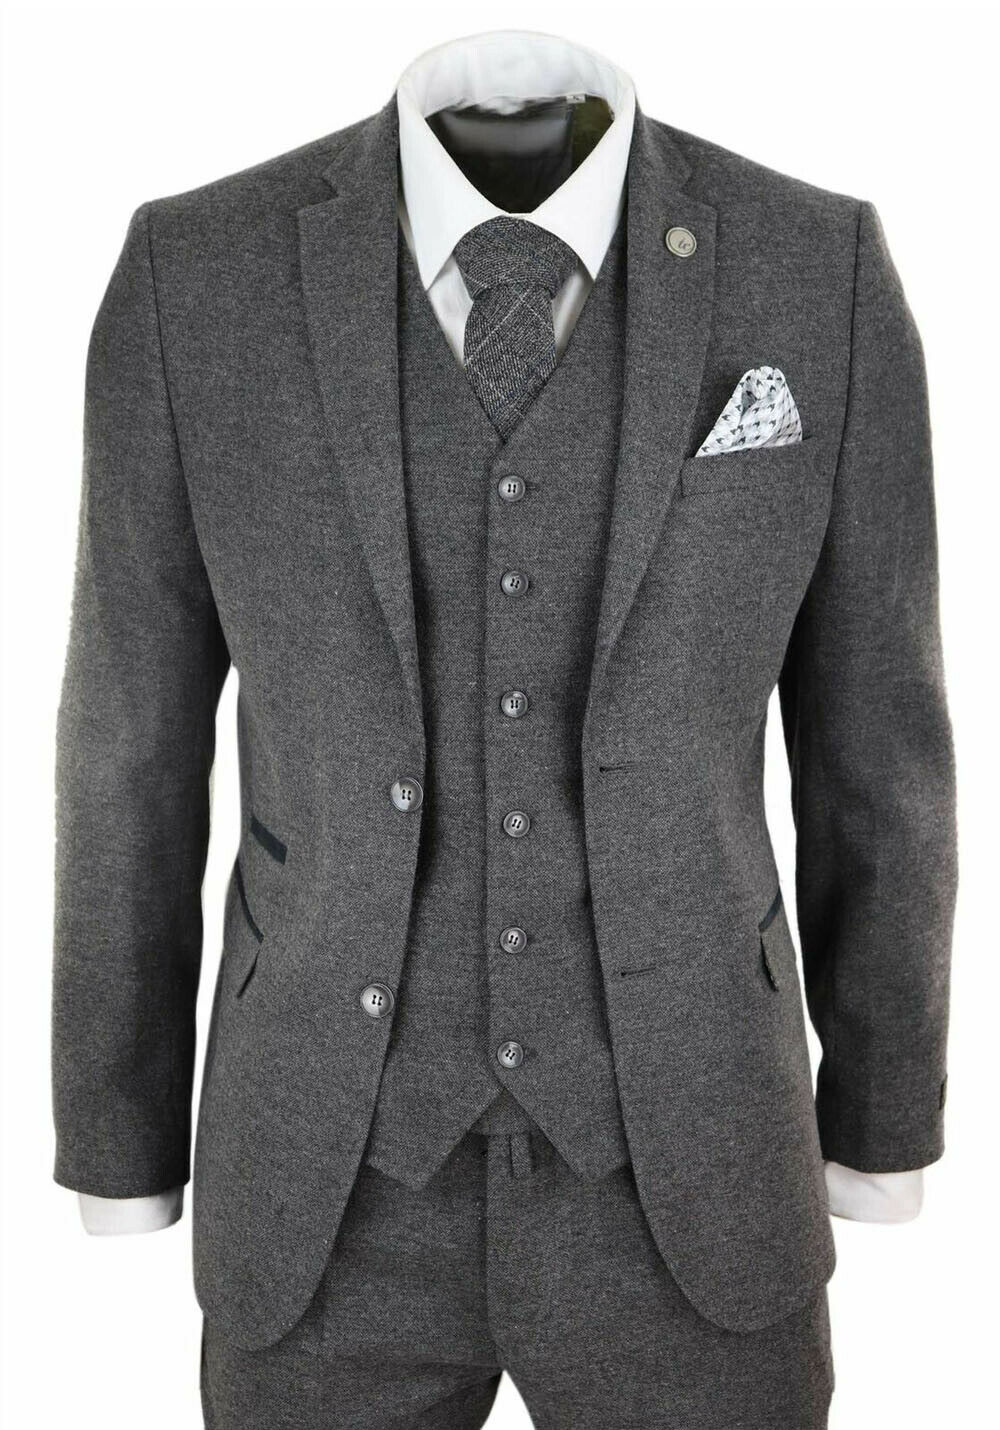 Mens Wool Tweed Peaky Blinders Suit 3 Piece Authentic 1920s Tailored Fit Classic Suits  - AliExpress